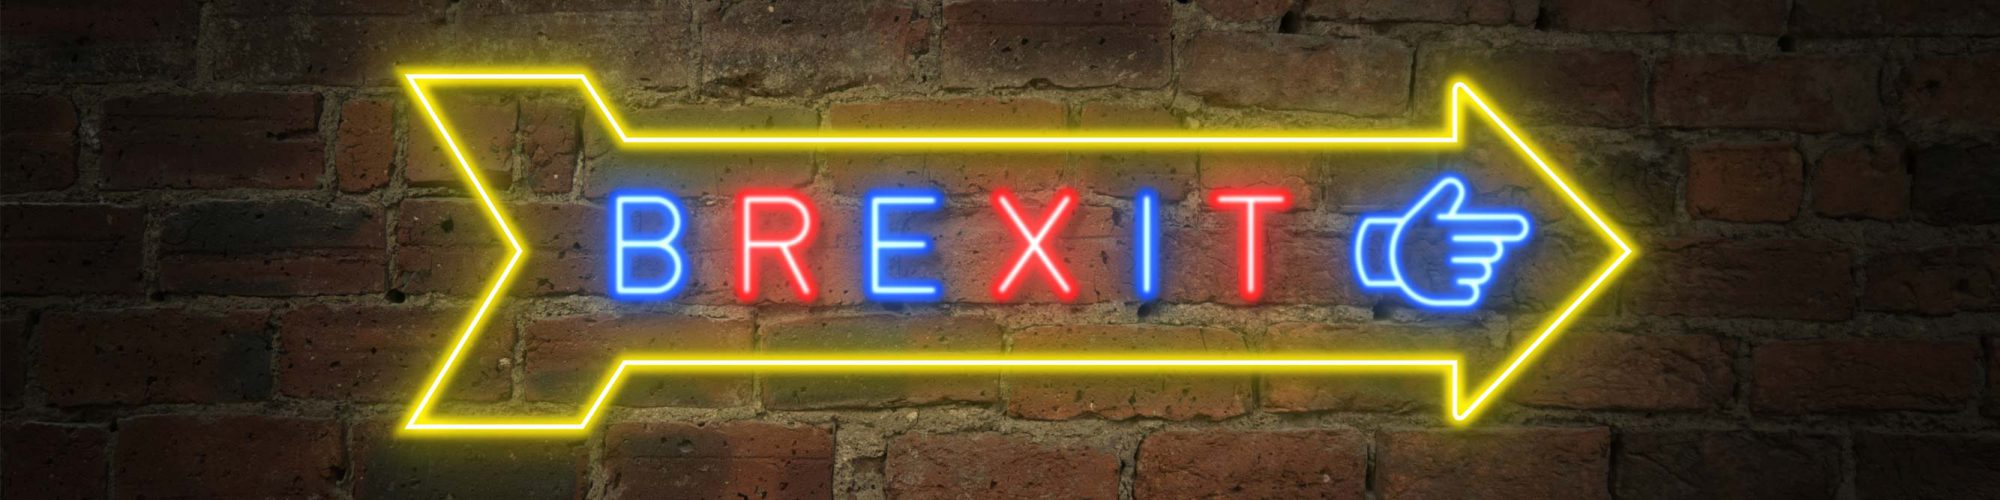 Governance, Risk and Compliance as we move ever closer to Brexit